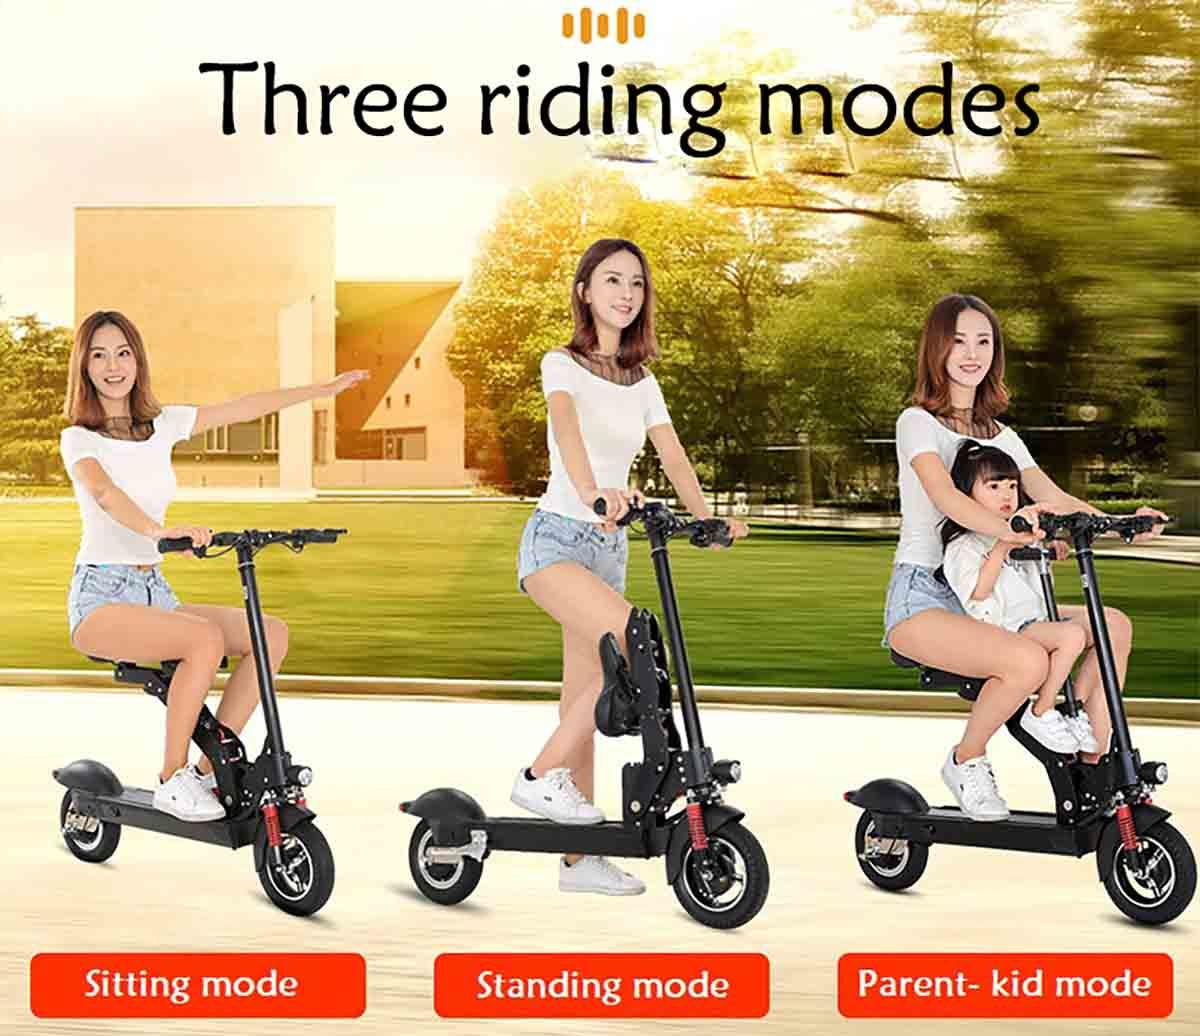 Giantplus-Fast Electric Scooter | T8 Sitting Folding Electric Scooter For Sale - Giantplus